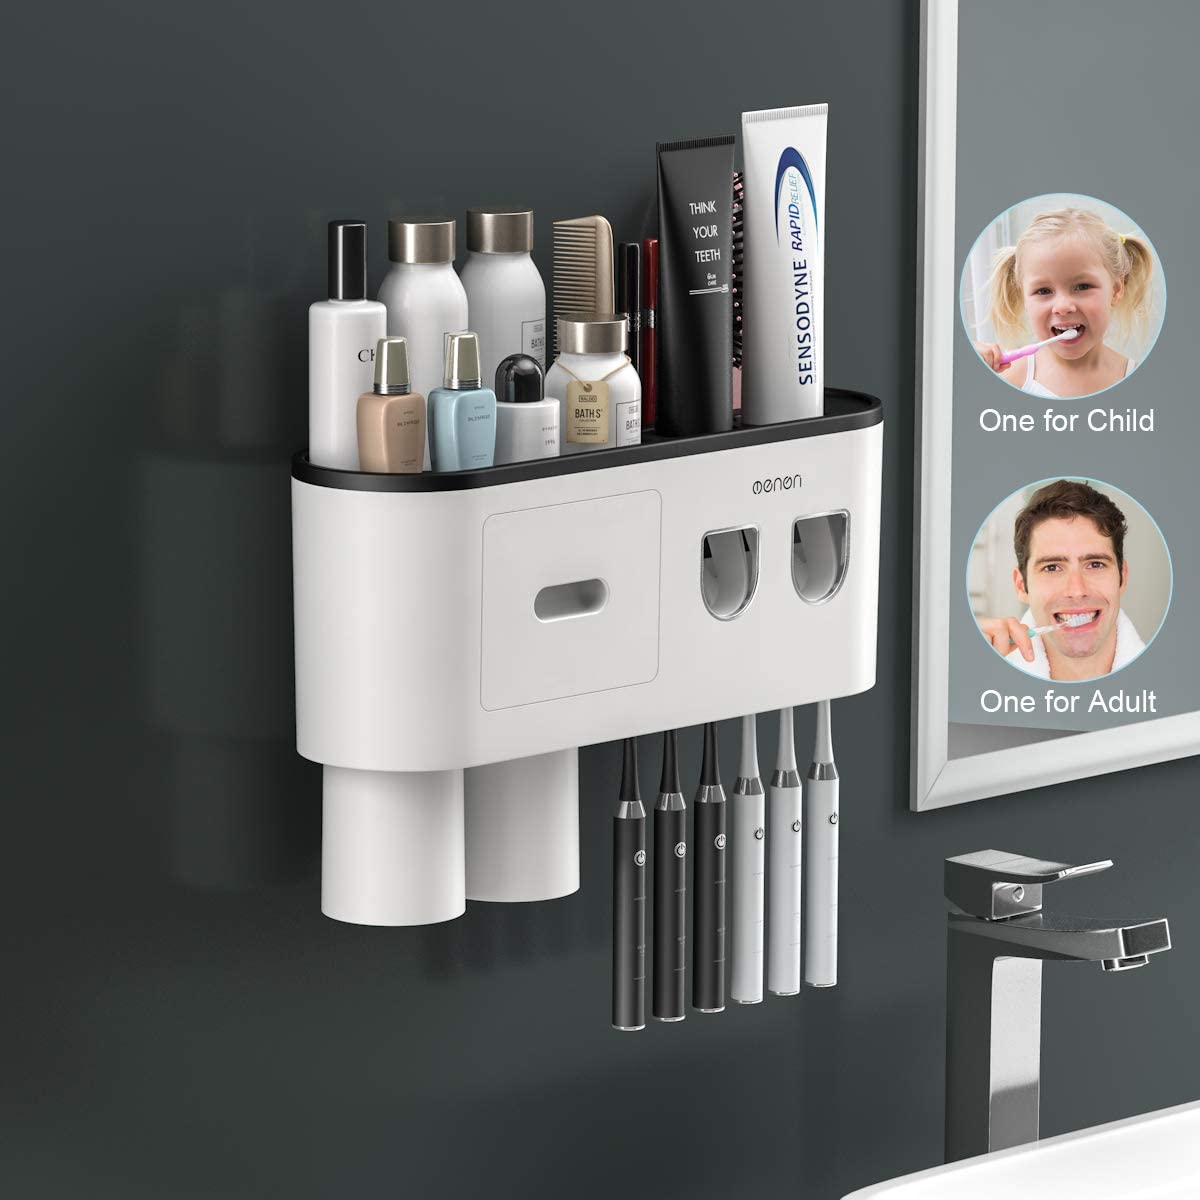 TuCao Double Automatic Toothpaste Dispensers Squeezer Kit with Toothbrush Holder Wall Mounted, Large Storage Organizer with 6 Toothbrush Slots, 2 Magnetic Cups and Cosmetic Organizer Drawer (2 Cups)